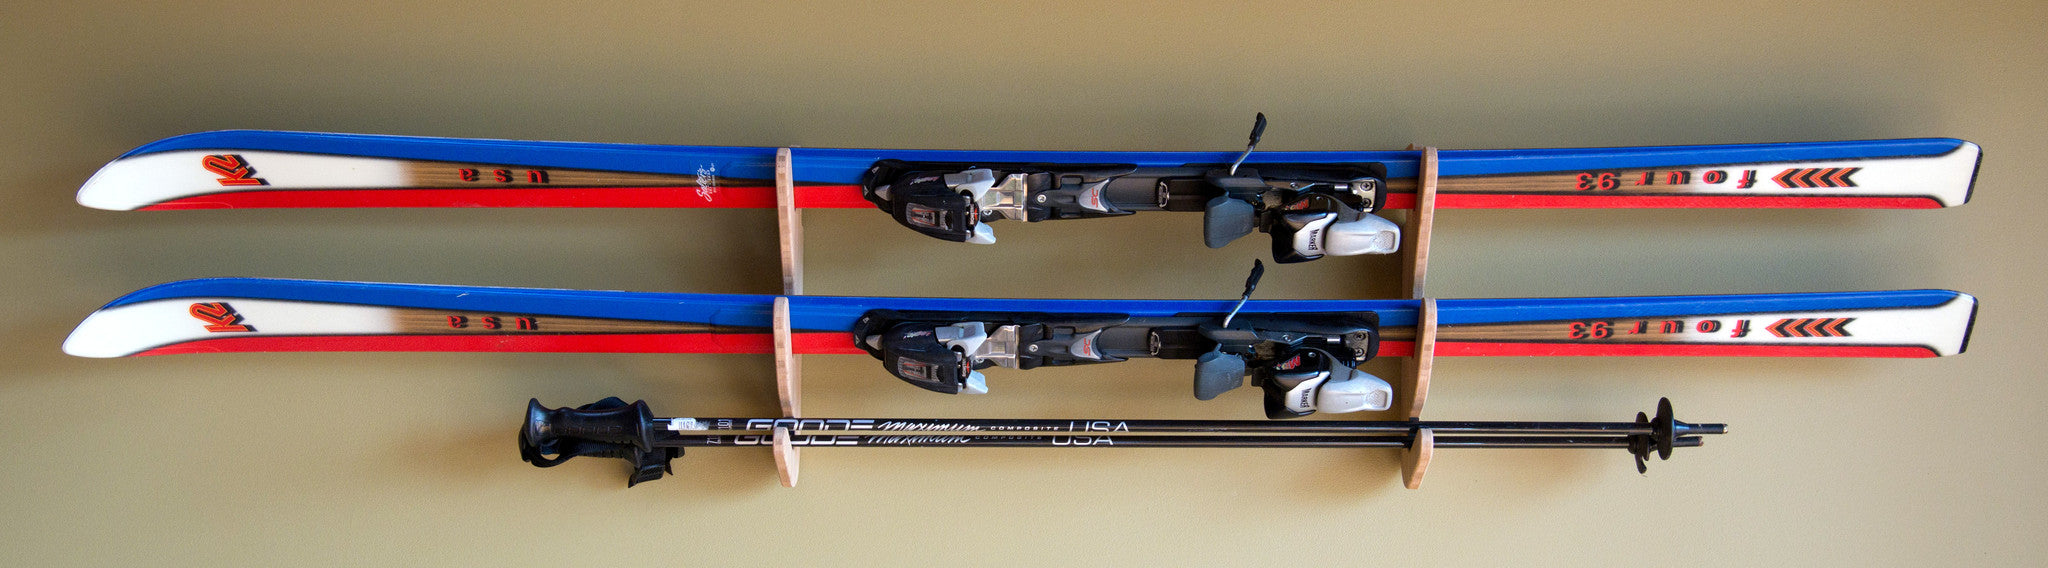 bamboo wall mount ski rack